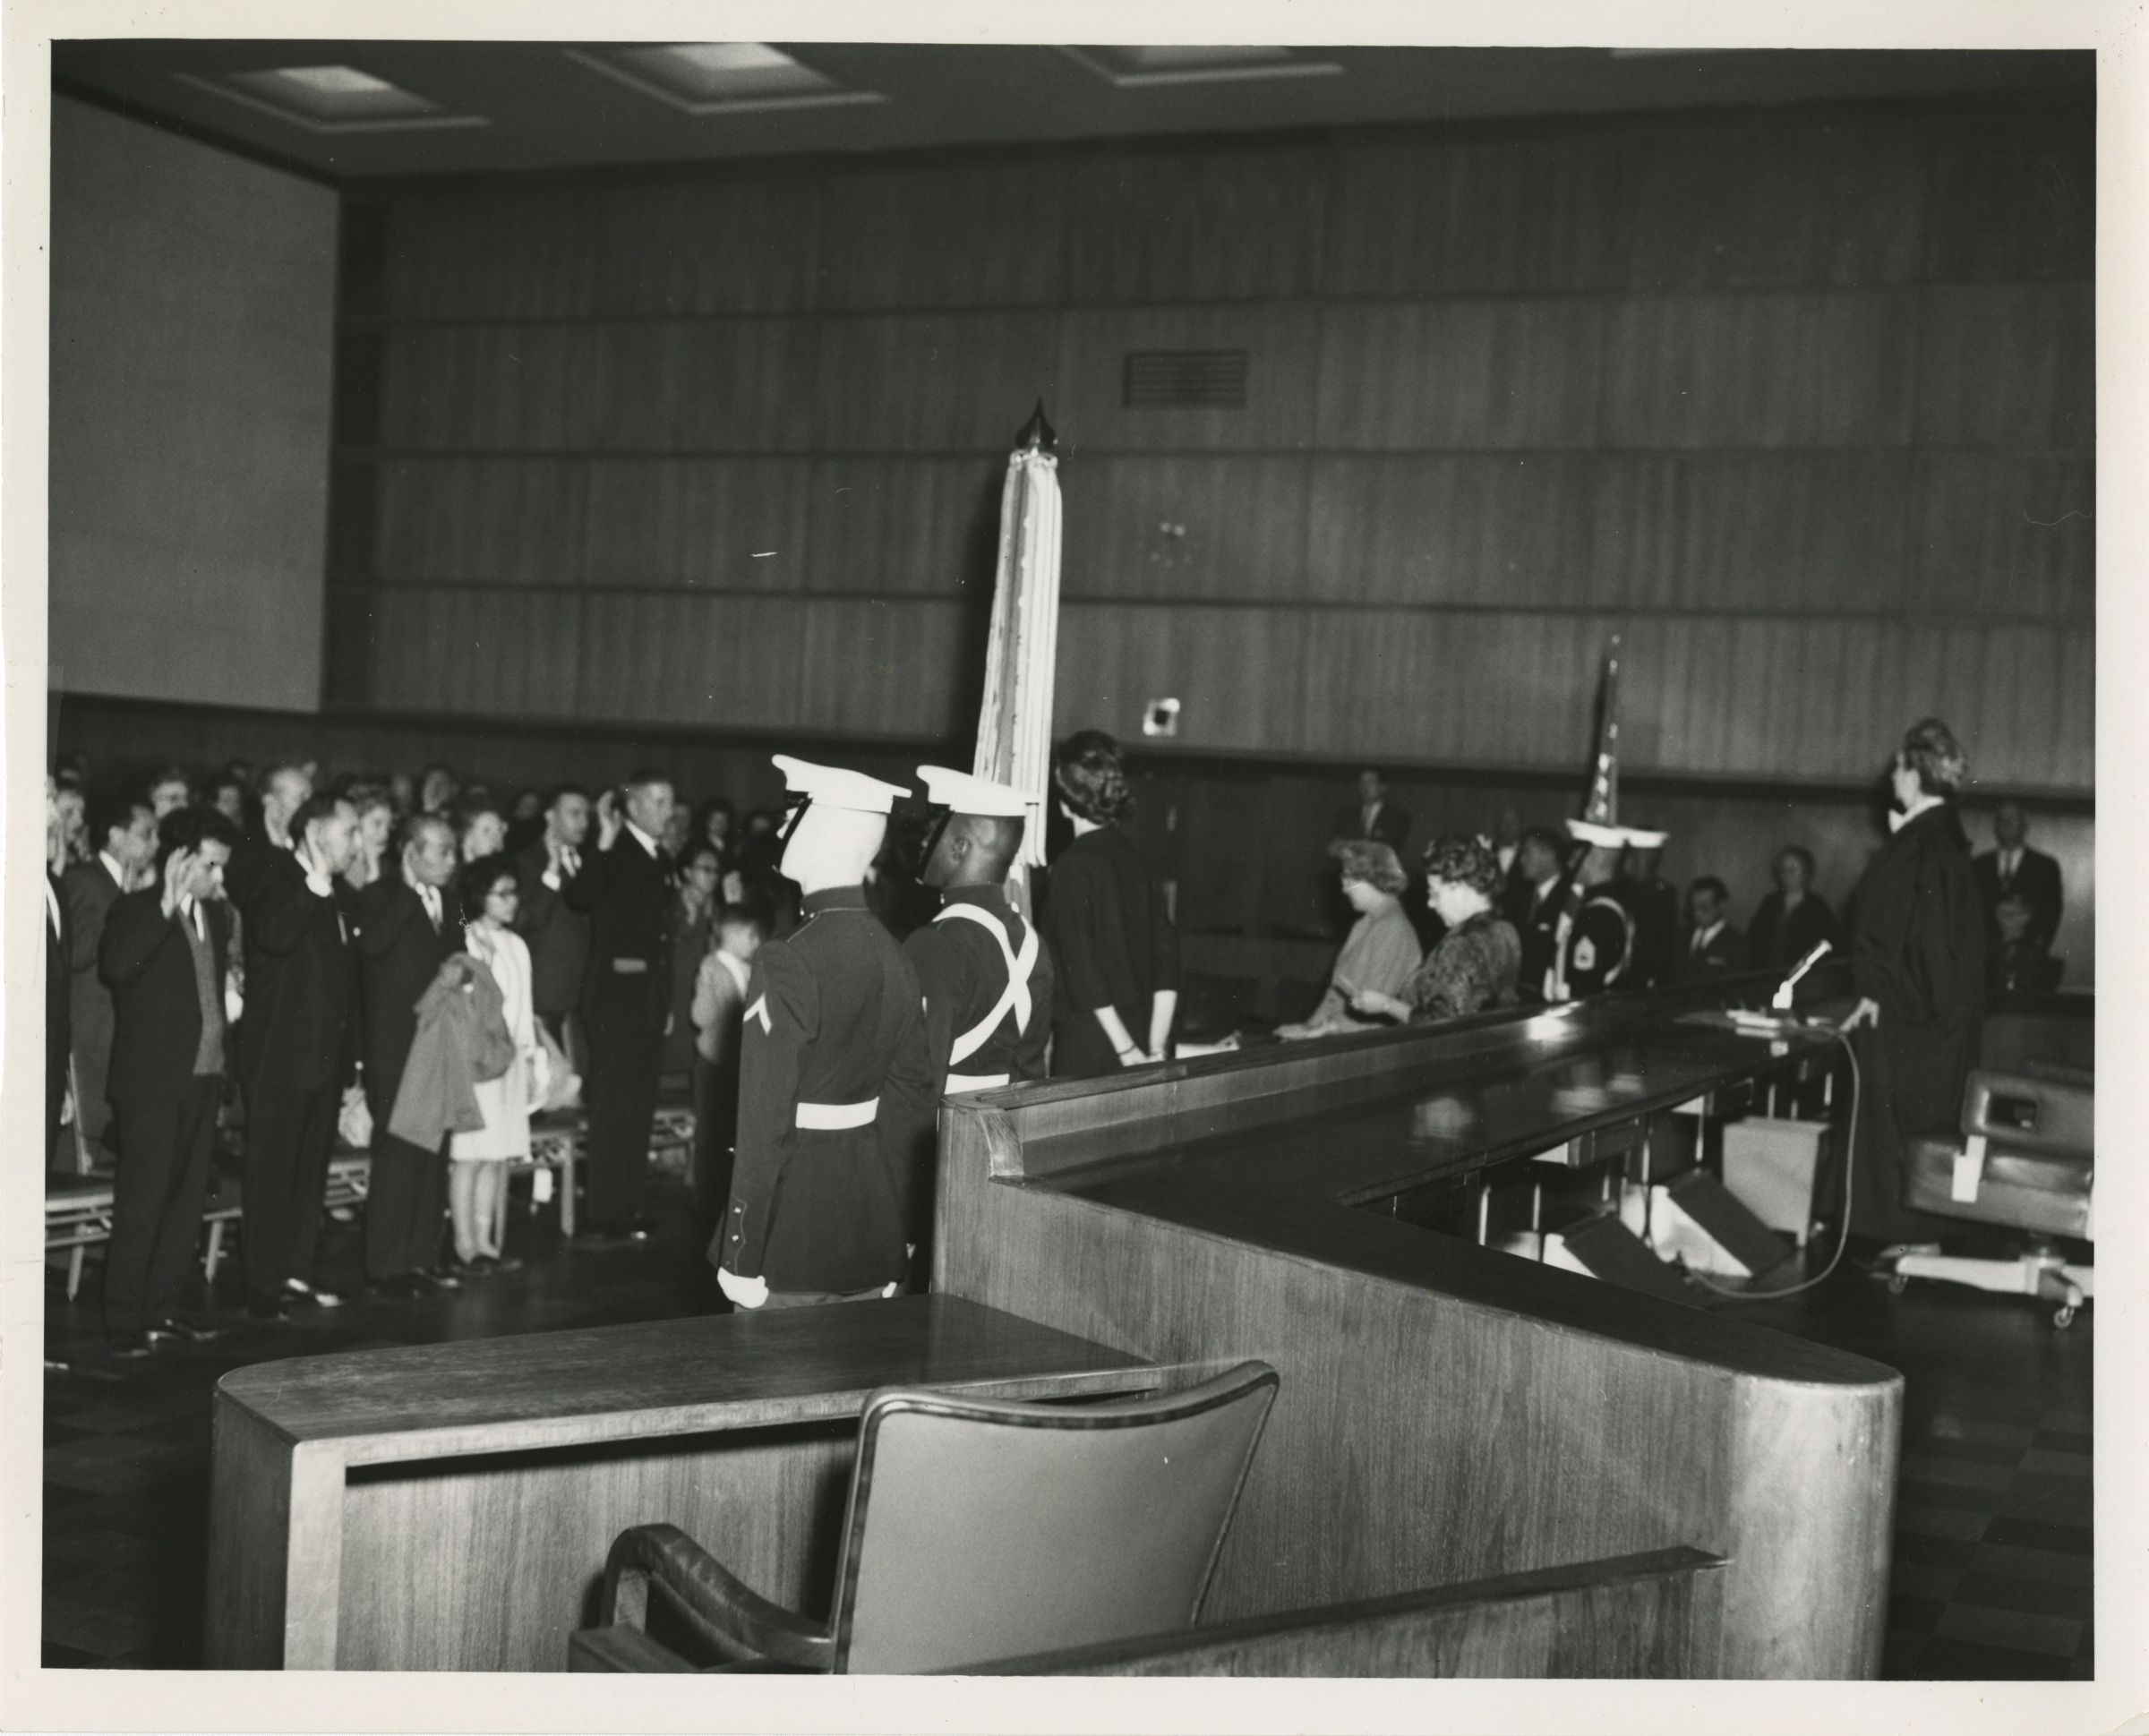 Judge Burnita Matthews presides over naturalization ceremony in a courtroom (1961)